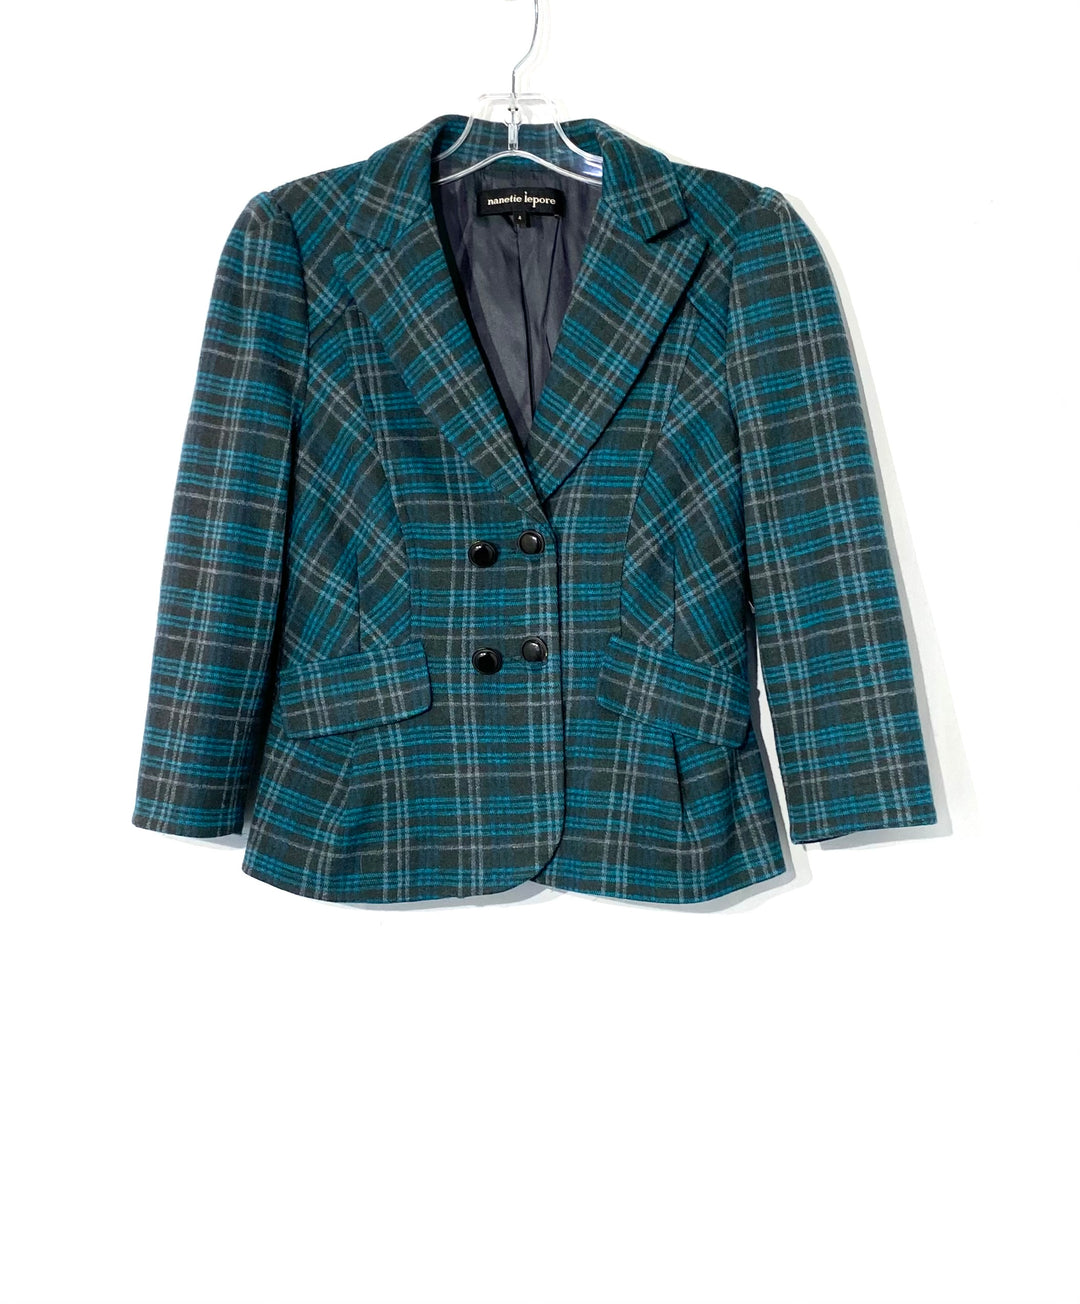 "Primary Photo - BRAND: NANETTE LEPORE <BR>STYLE: BLAZER JACKET <BR>COLOR: PLAID <BR>SIZE: S /4<BR>SKU: 262-26275-72008<BR>100% WOOL<BR>SHOULDER SEAM TO WRIST 18""<BR>PIT TO HEM 11.5""<BR>PIT TO PIT 16.5"""